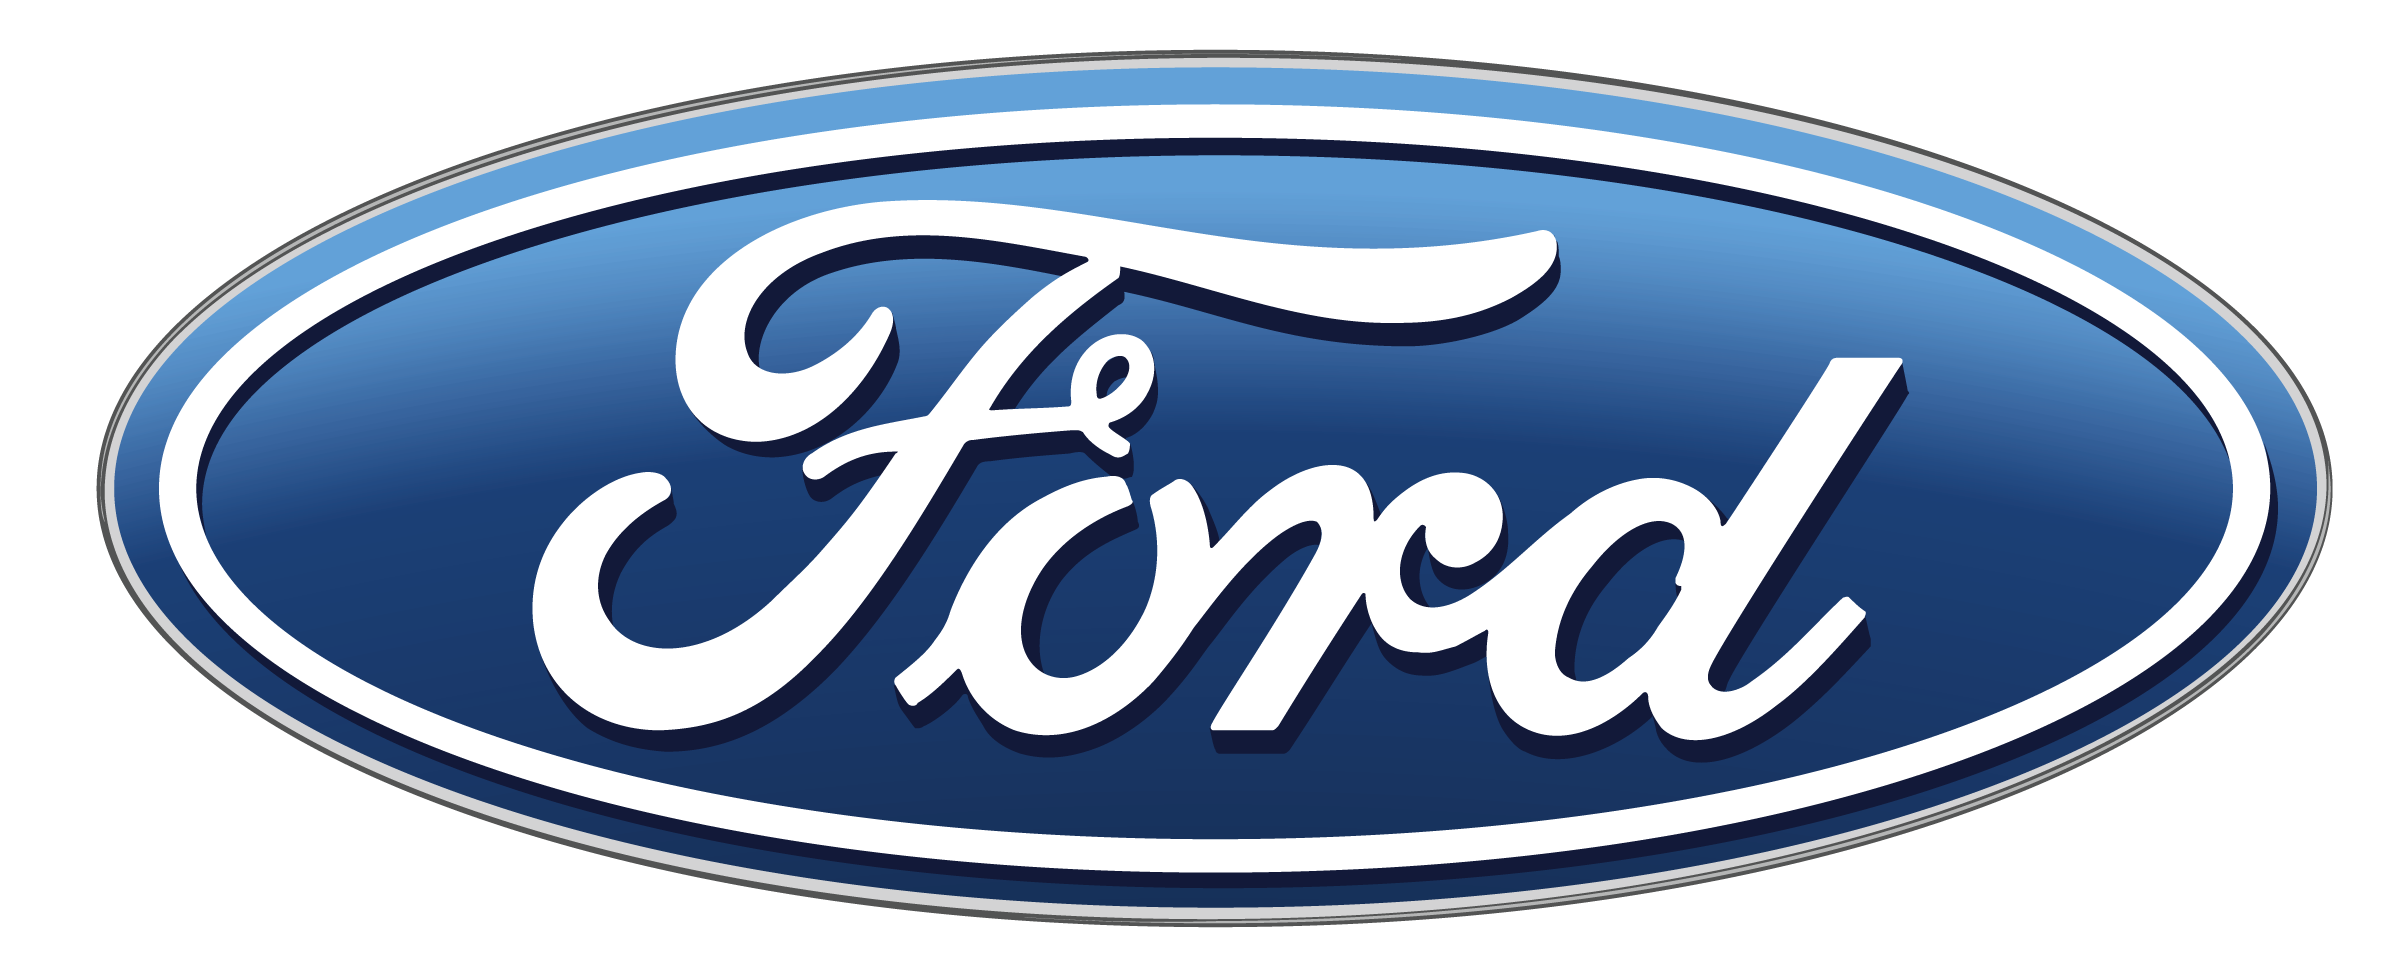 ford-car-logos-png-29.png